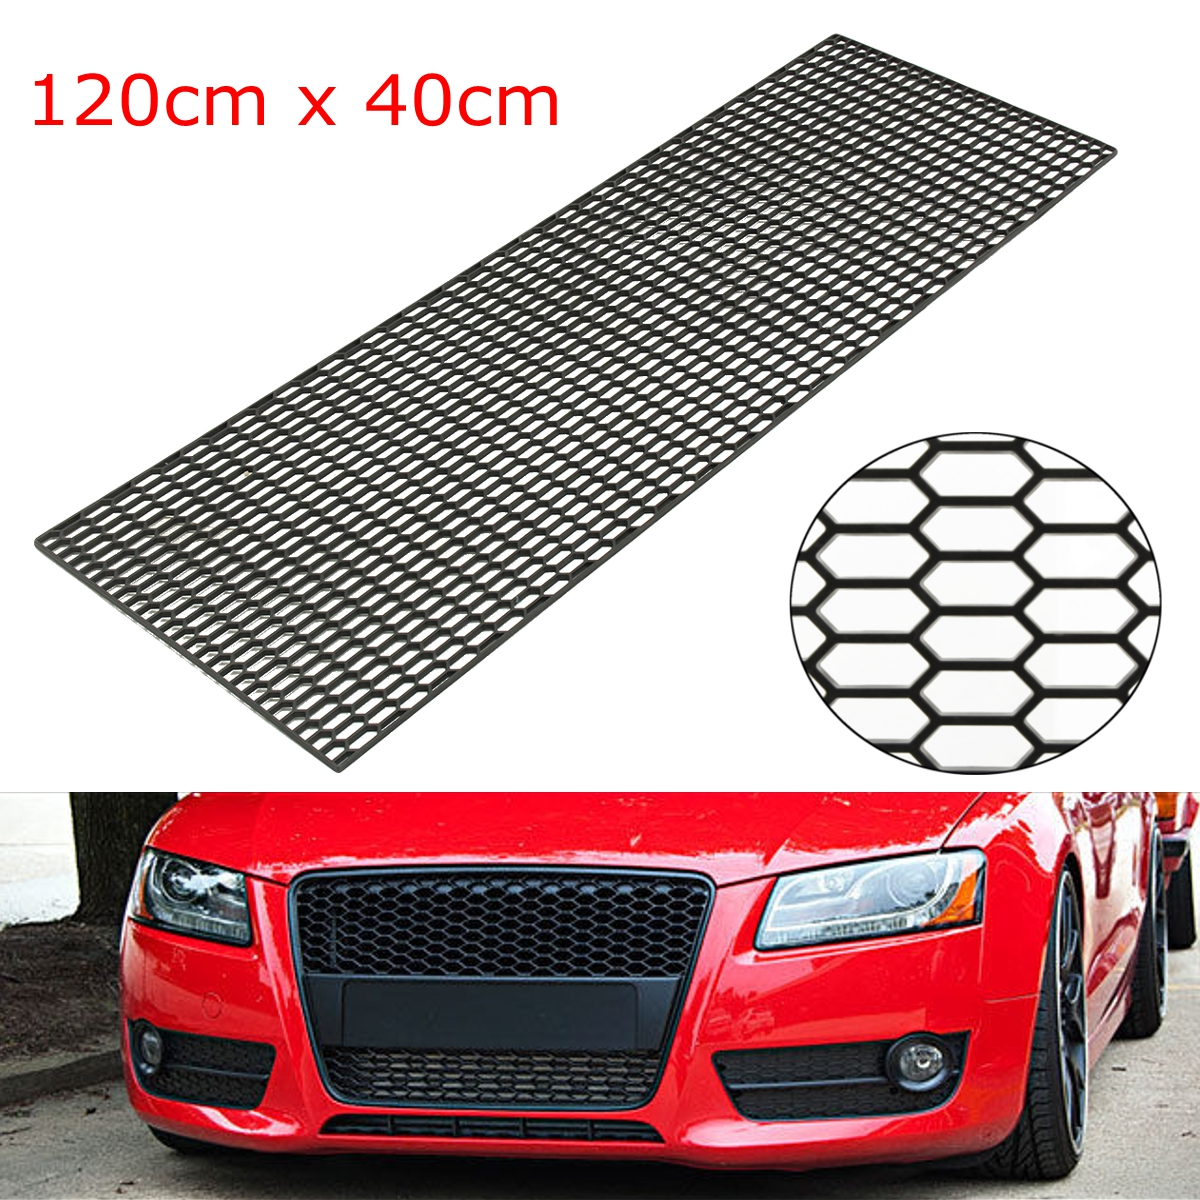 Universal Car Styling Grille Air Intake Racing Honeycomb Meshed Grill Spoiler Bumper Hood Vent 120cm ob 515 universal air flow vent hood covers for car silver pair